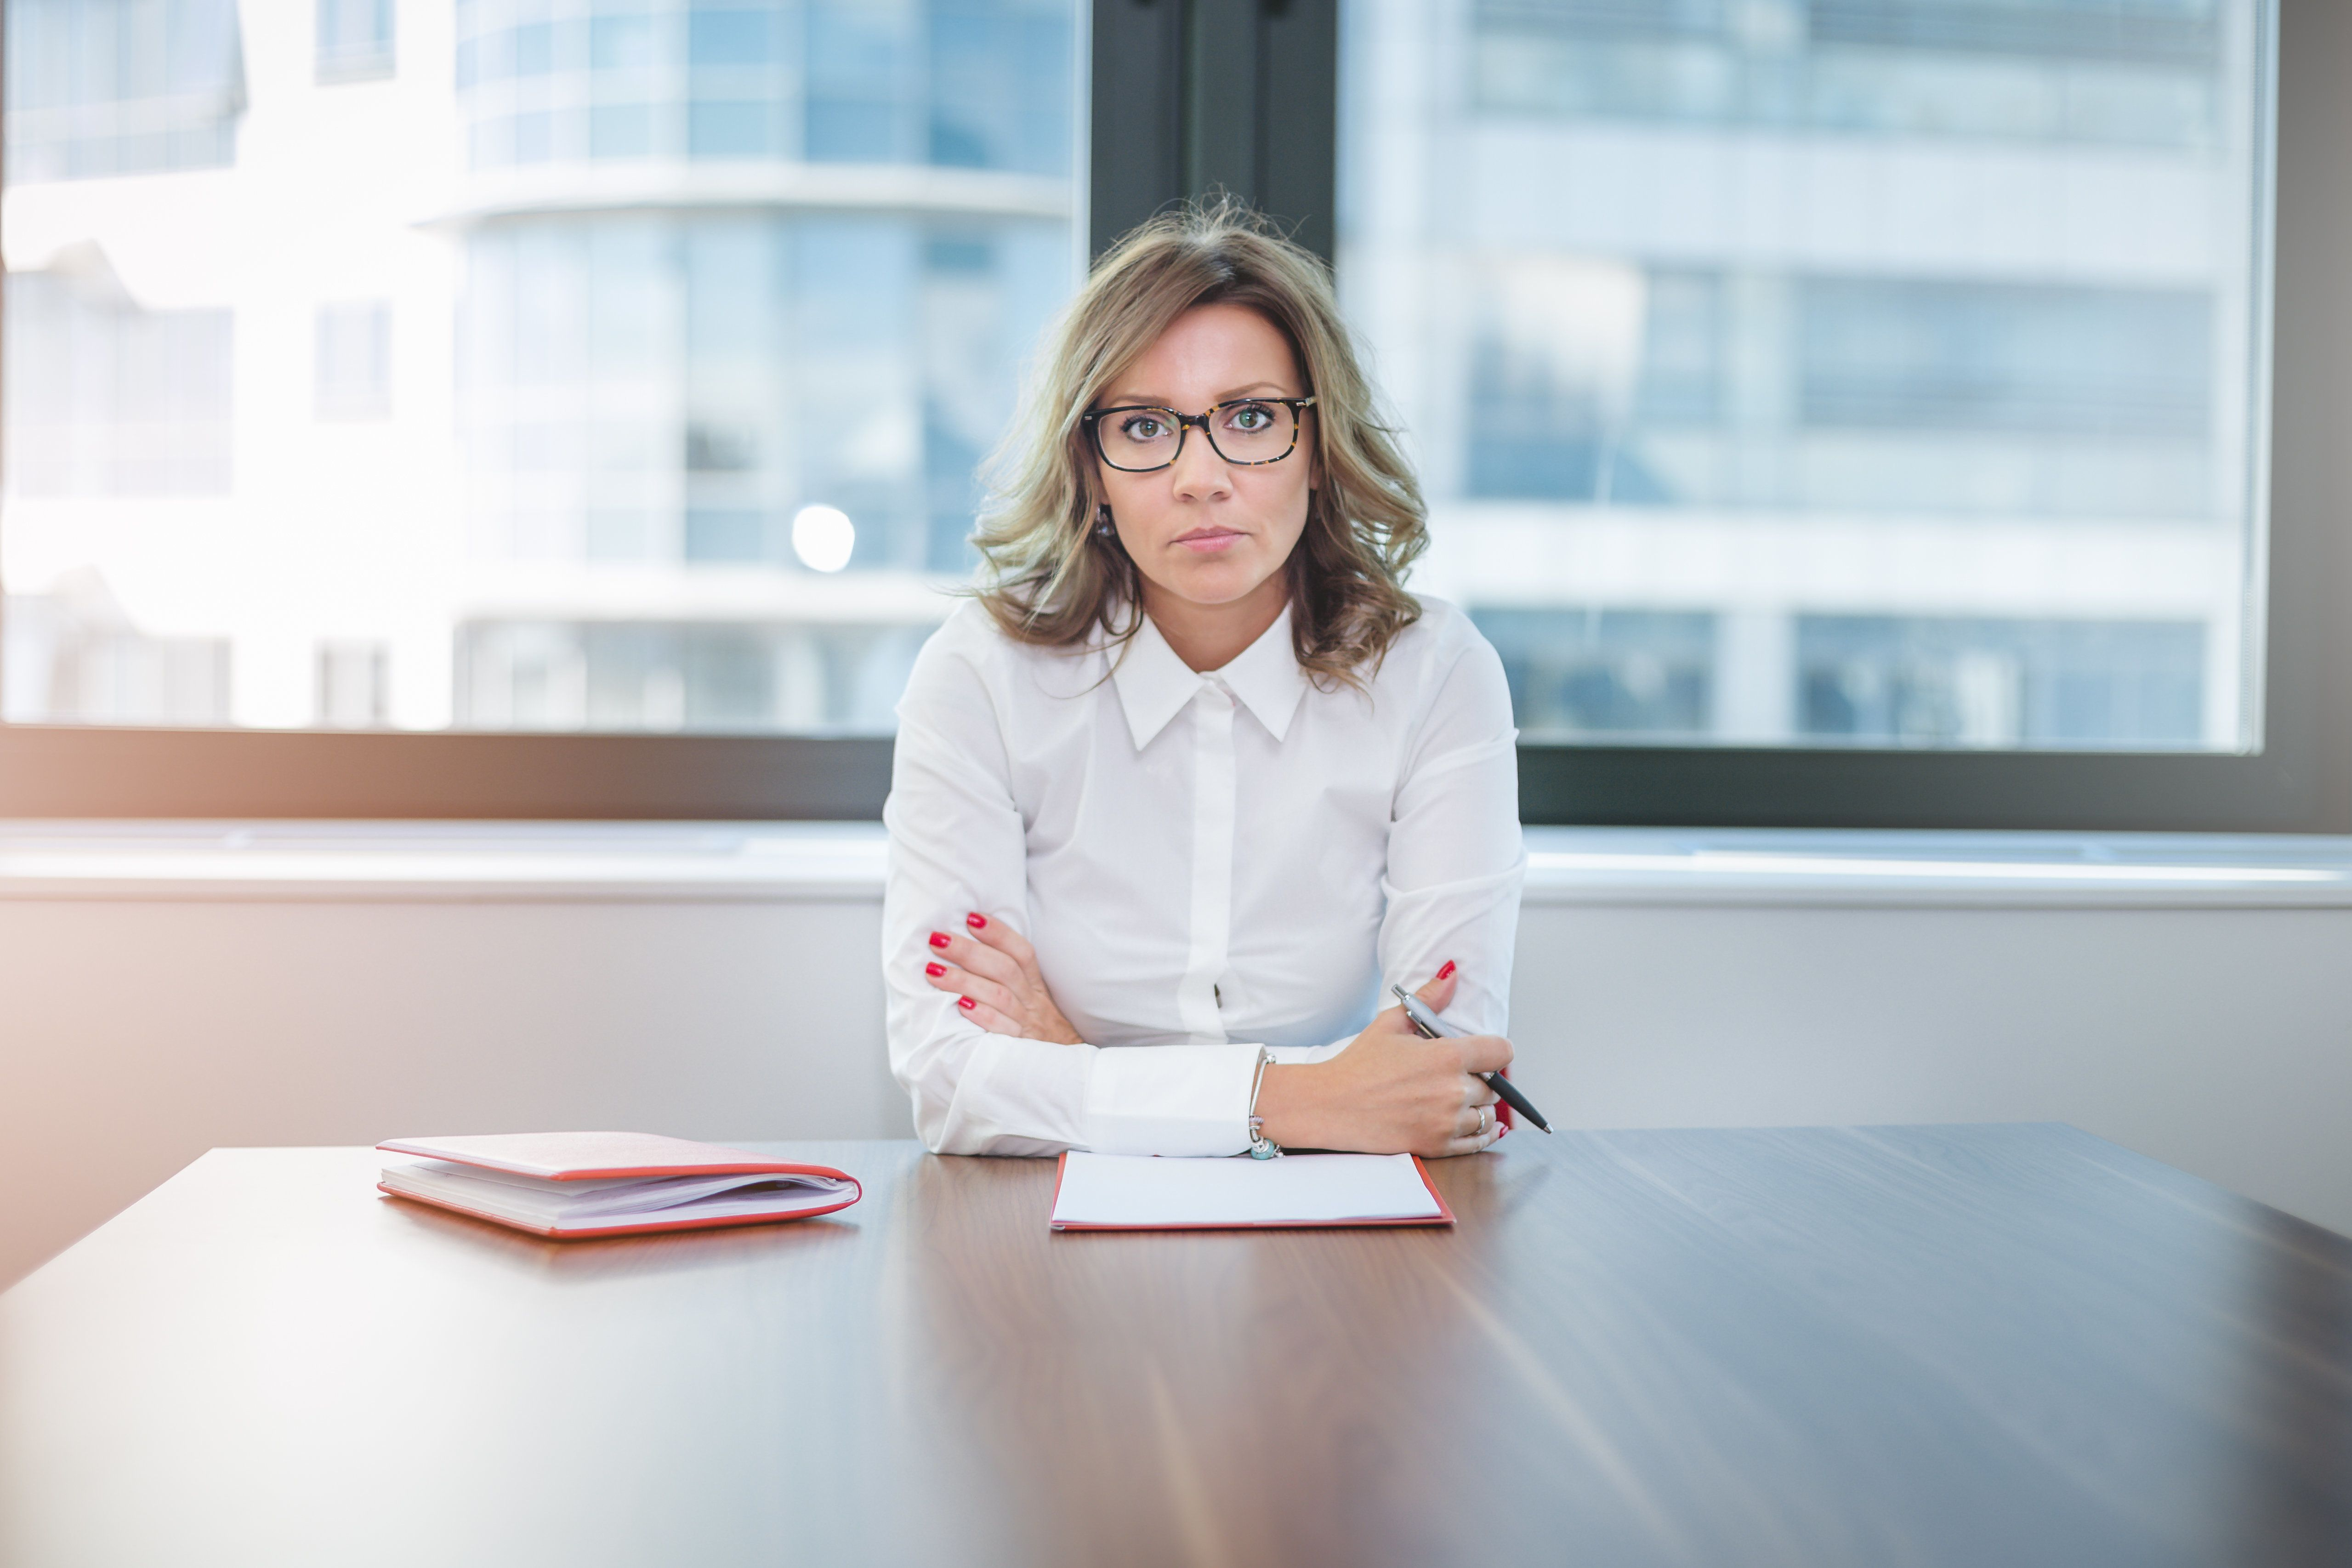 Here's what <i>not</i> to do in your job interview.